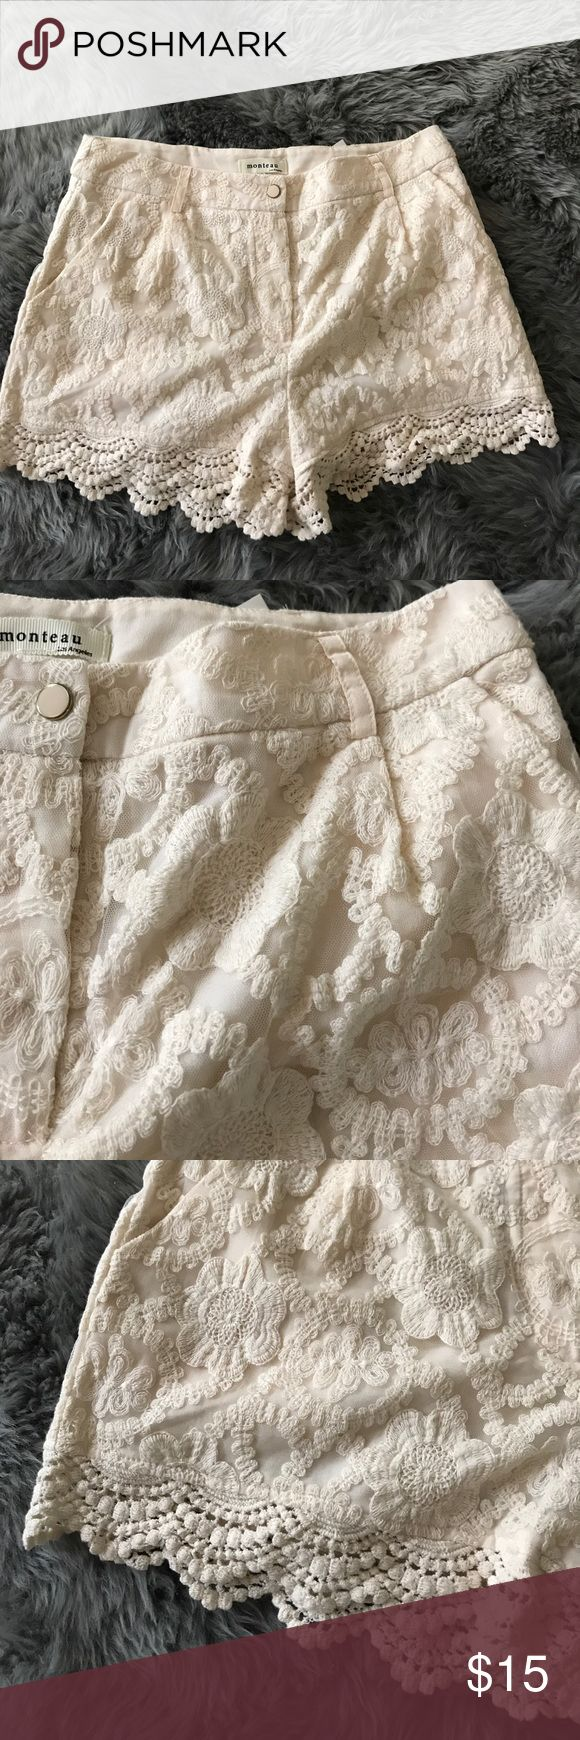 Lace Shorts Cream Lace Shorts Cream Size L with pockets Monteau Shorts